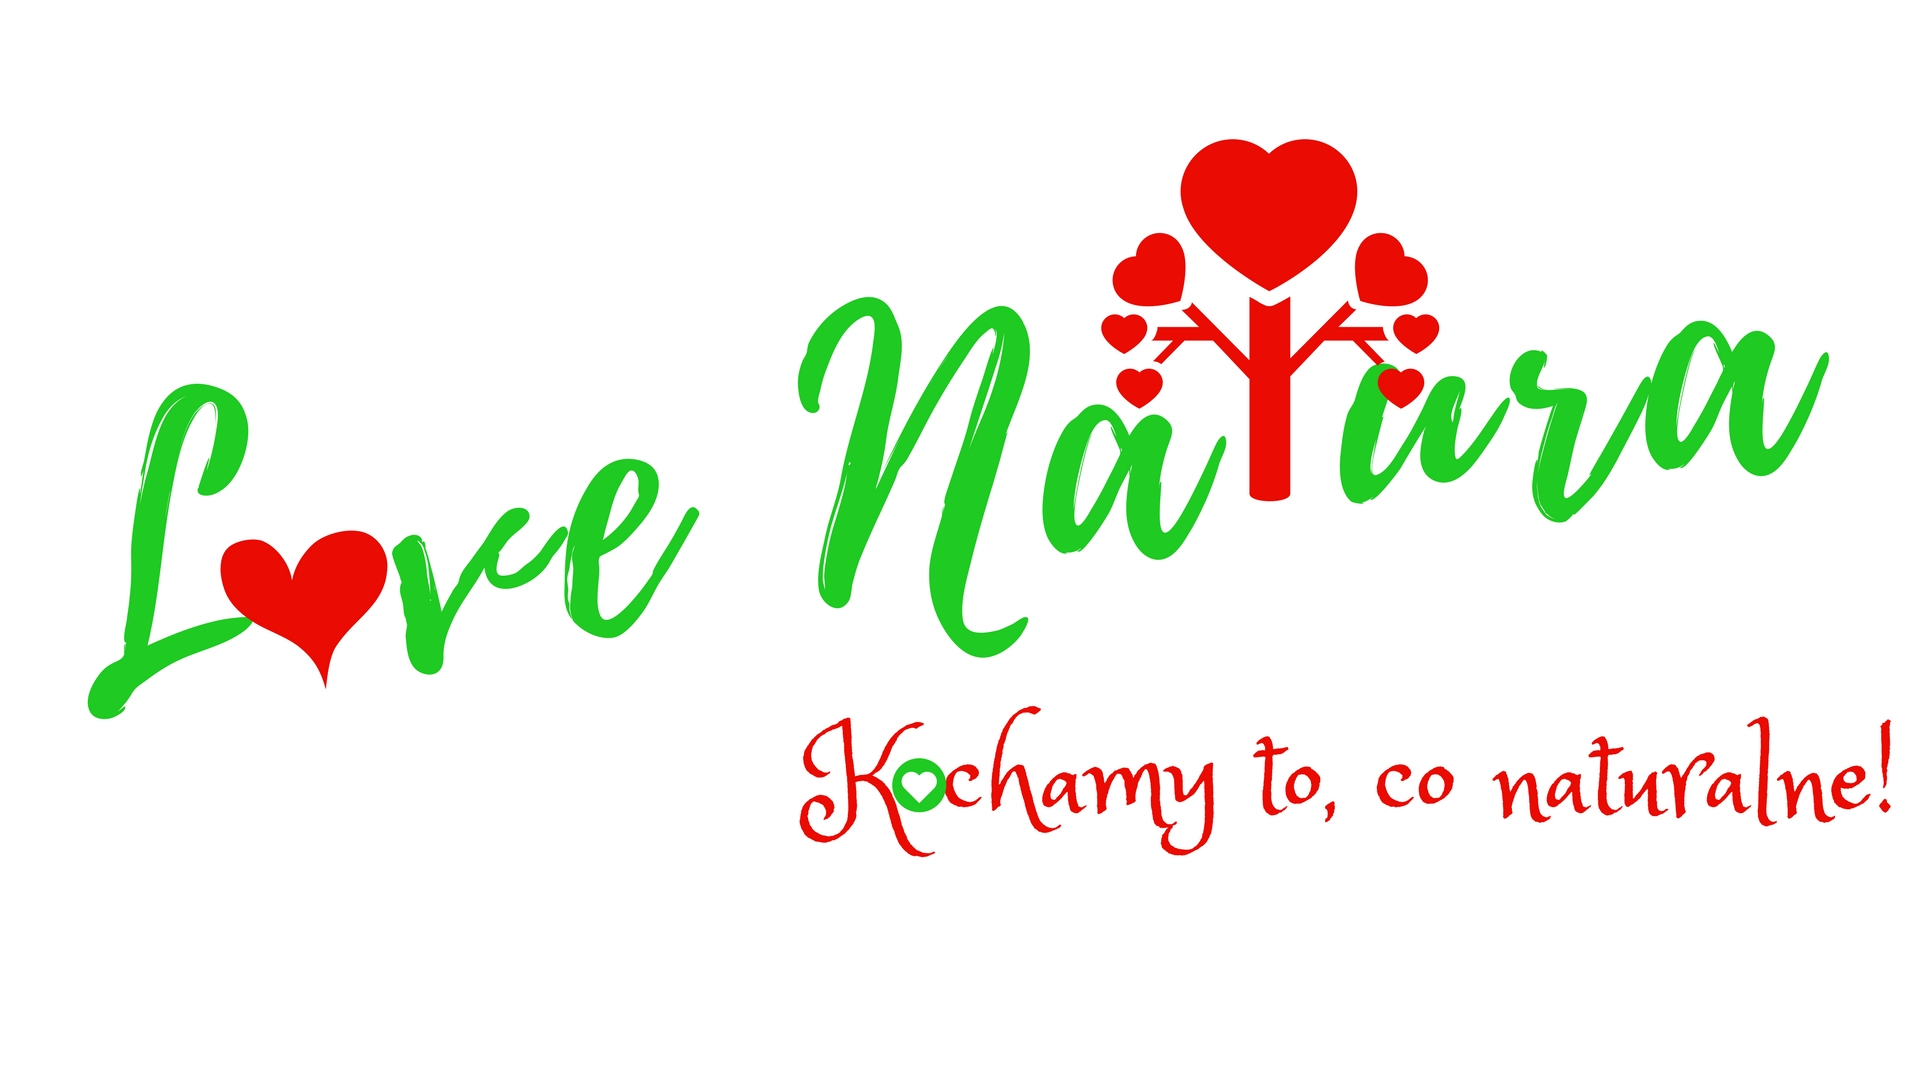 Love natura - kochamy to, co naturalne